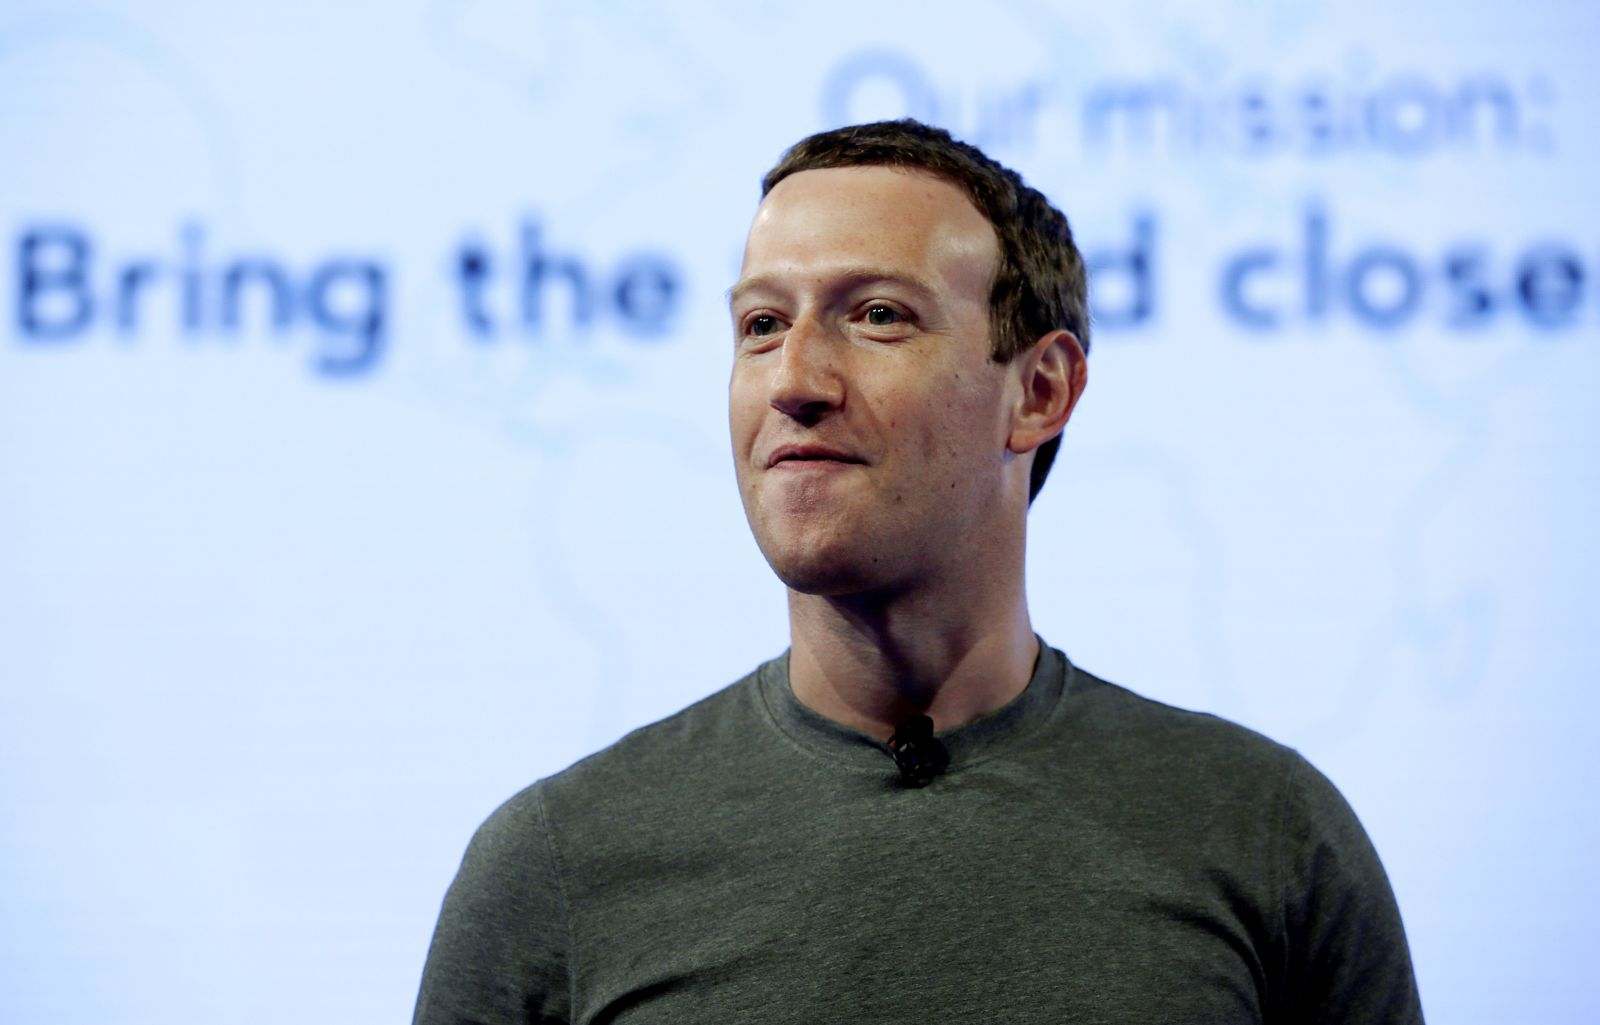 FFILE - In this June 21, 2017, file photo, Facebook CEO Mark Zuckerberg speaks during preparation for the Facebook Communities Summit, in Chicago. Zuckerberg embarked on a rare media mini-blitz Wednesday, March 22, 2018, in the wake of a privacy scandal involving a Trump-connected data-mining firm. (AP Photo/Nam Y. Huh, File)